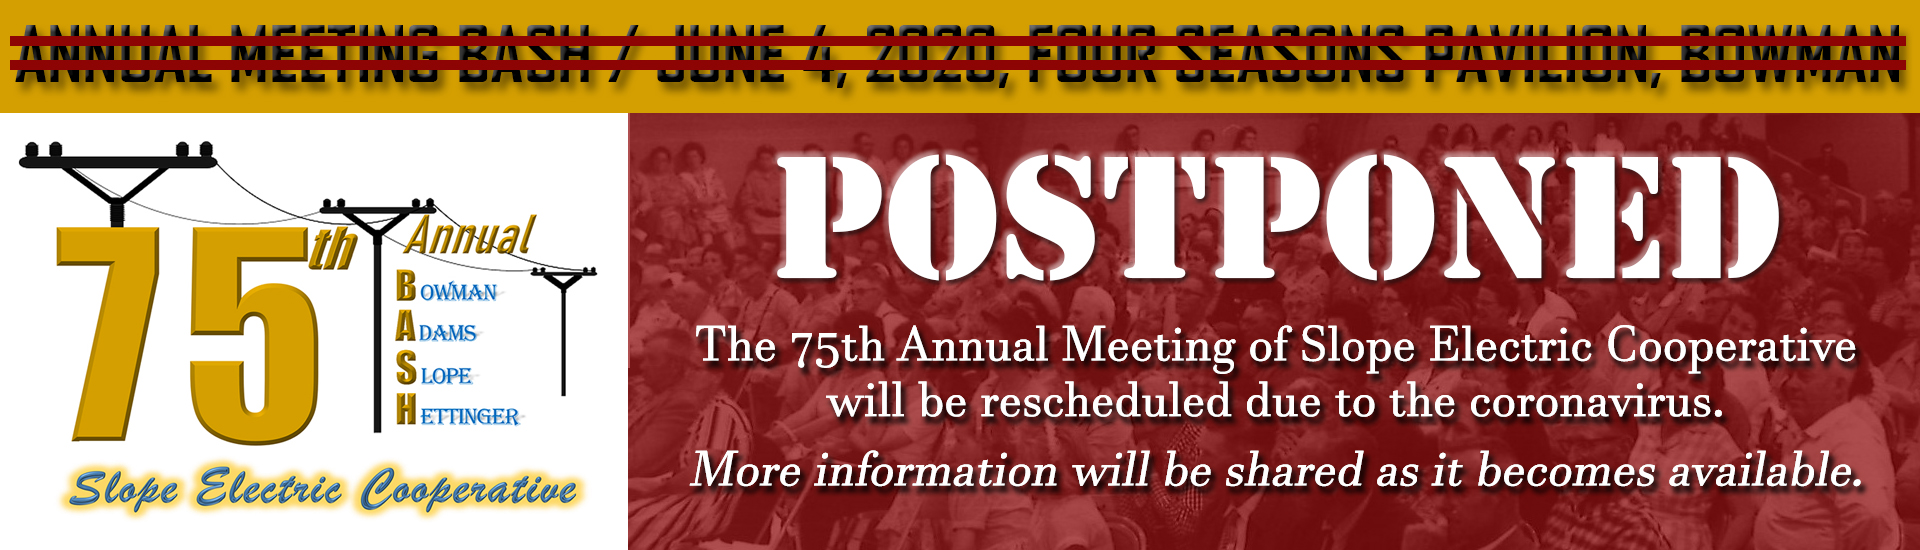 2020 Annual Meeting Postponed